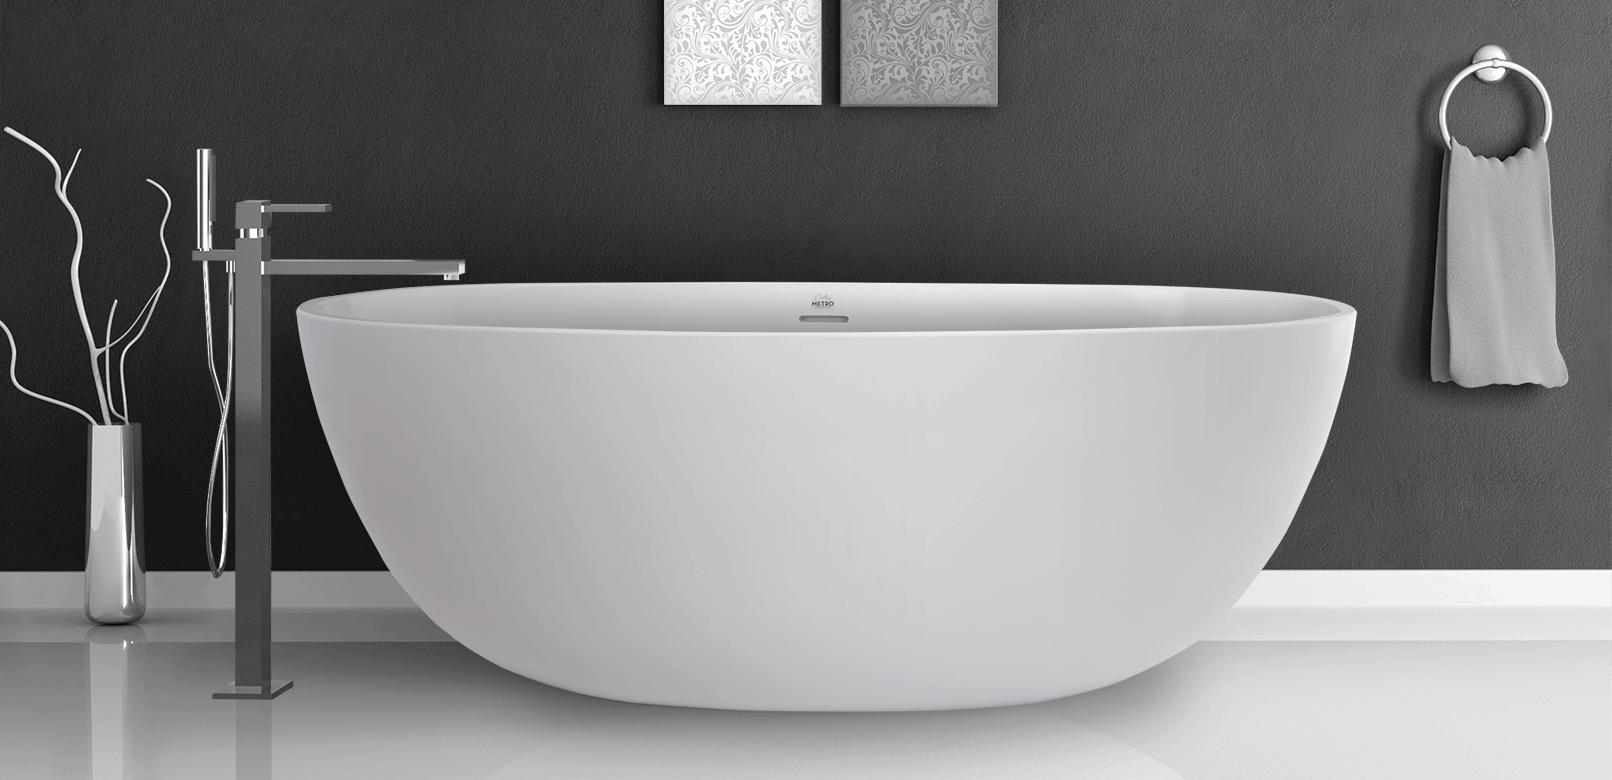 Freestanding Tub With Grab Bar Google Search Hydro Systems